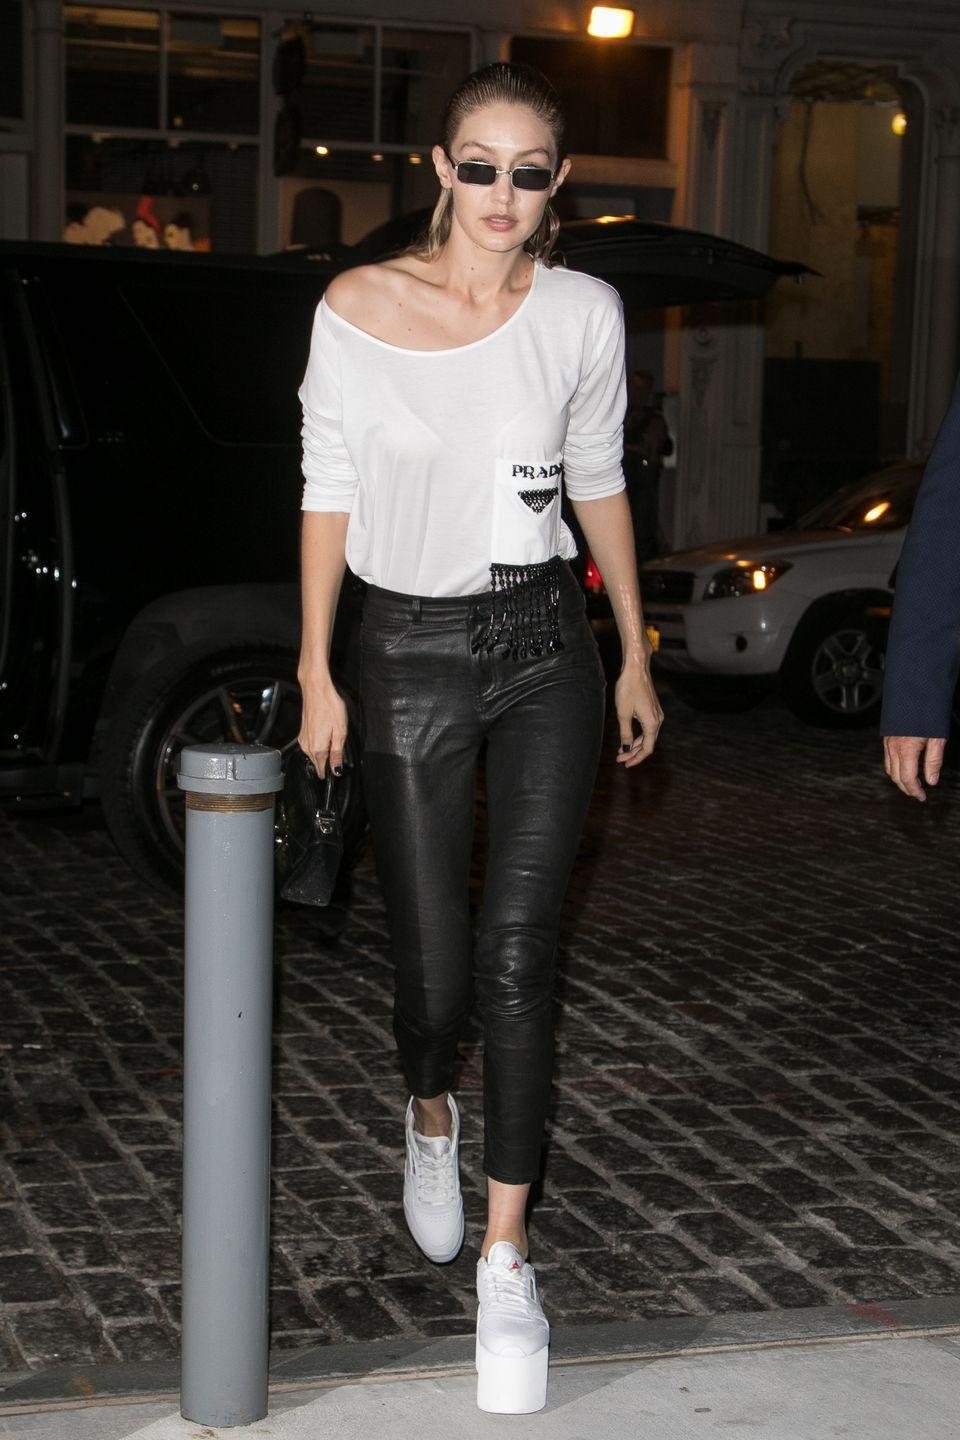 <p>Gigi Hadid has just accomplished the seemingly impossible mission we've all been on since the age of six: finding Baby Spice's sky-high platform sneakers. The model killed the retro look, pairing her statement kicks with a Prada tee and leather skinnies. </p>